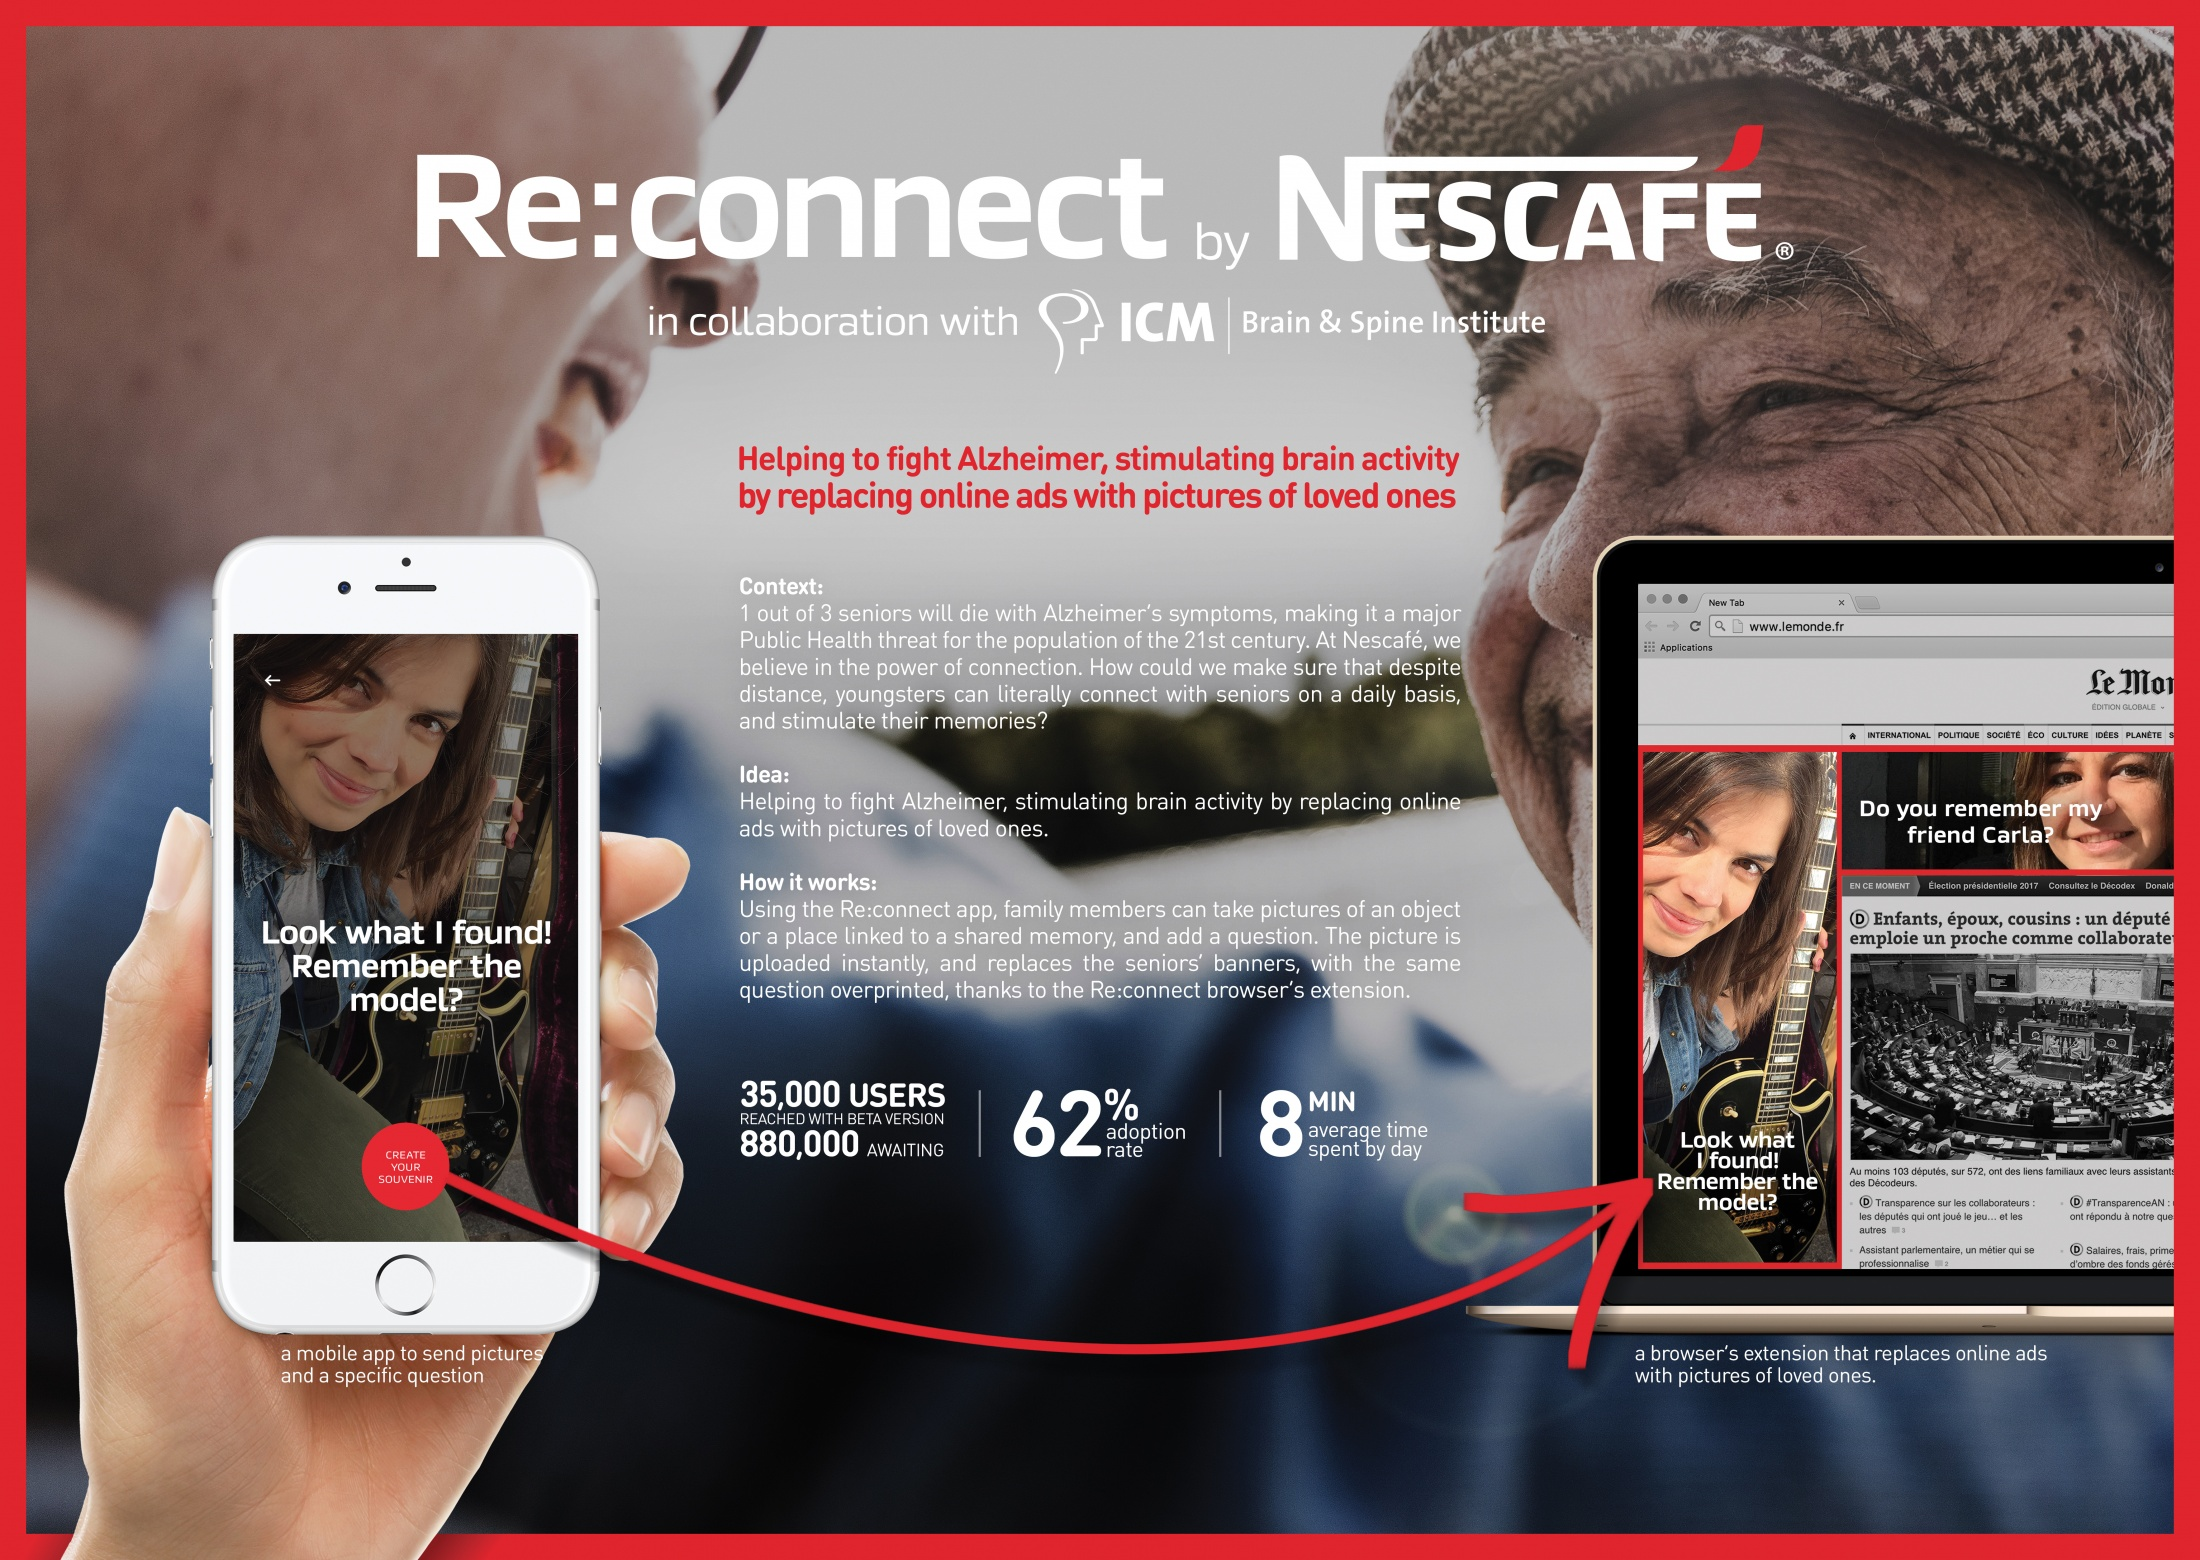 Image Media for Nescafé Reconnect